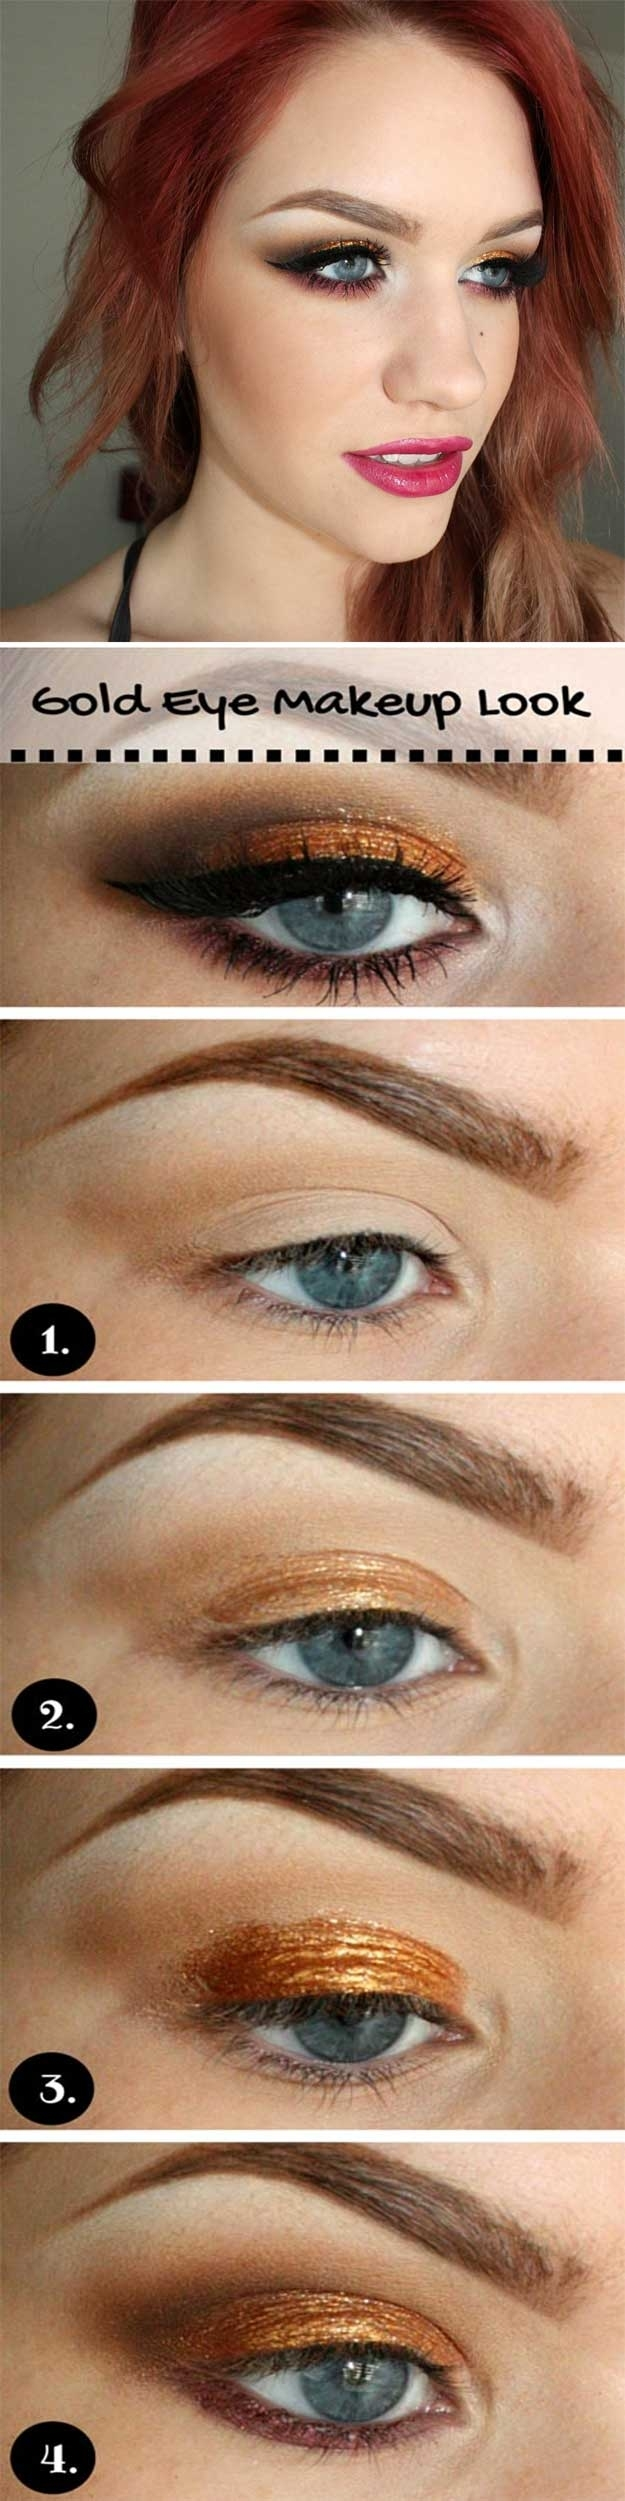 Wedding Makeup Looks For Blue Eyes And Red Hair | Saubhaya Makeup pertaining to Makeup Tutorials For Blue Eyes And Red Hair